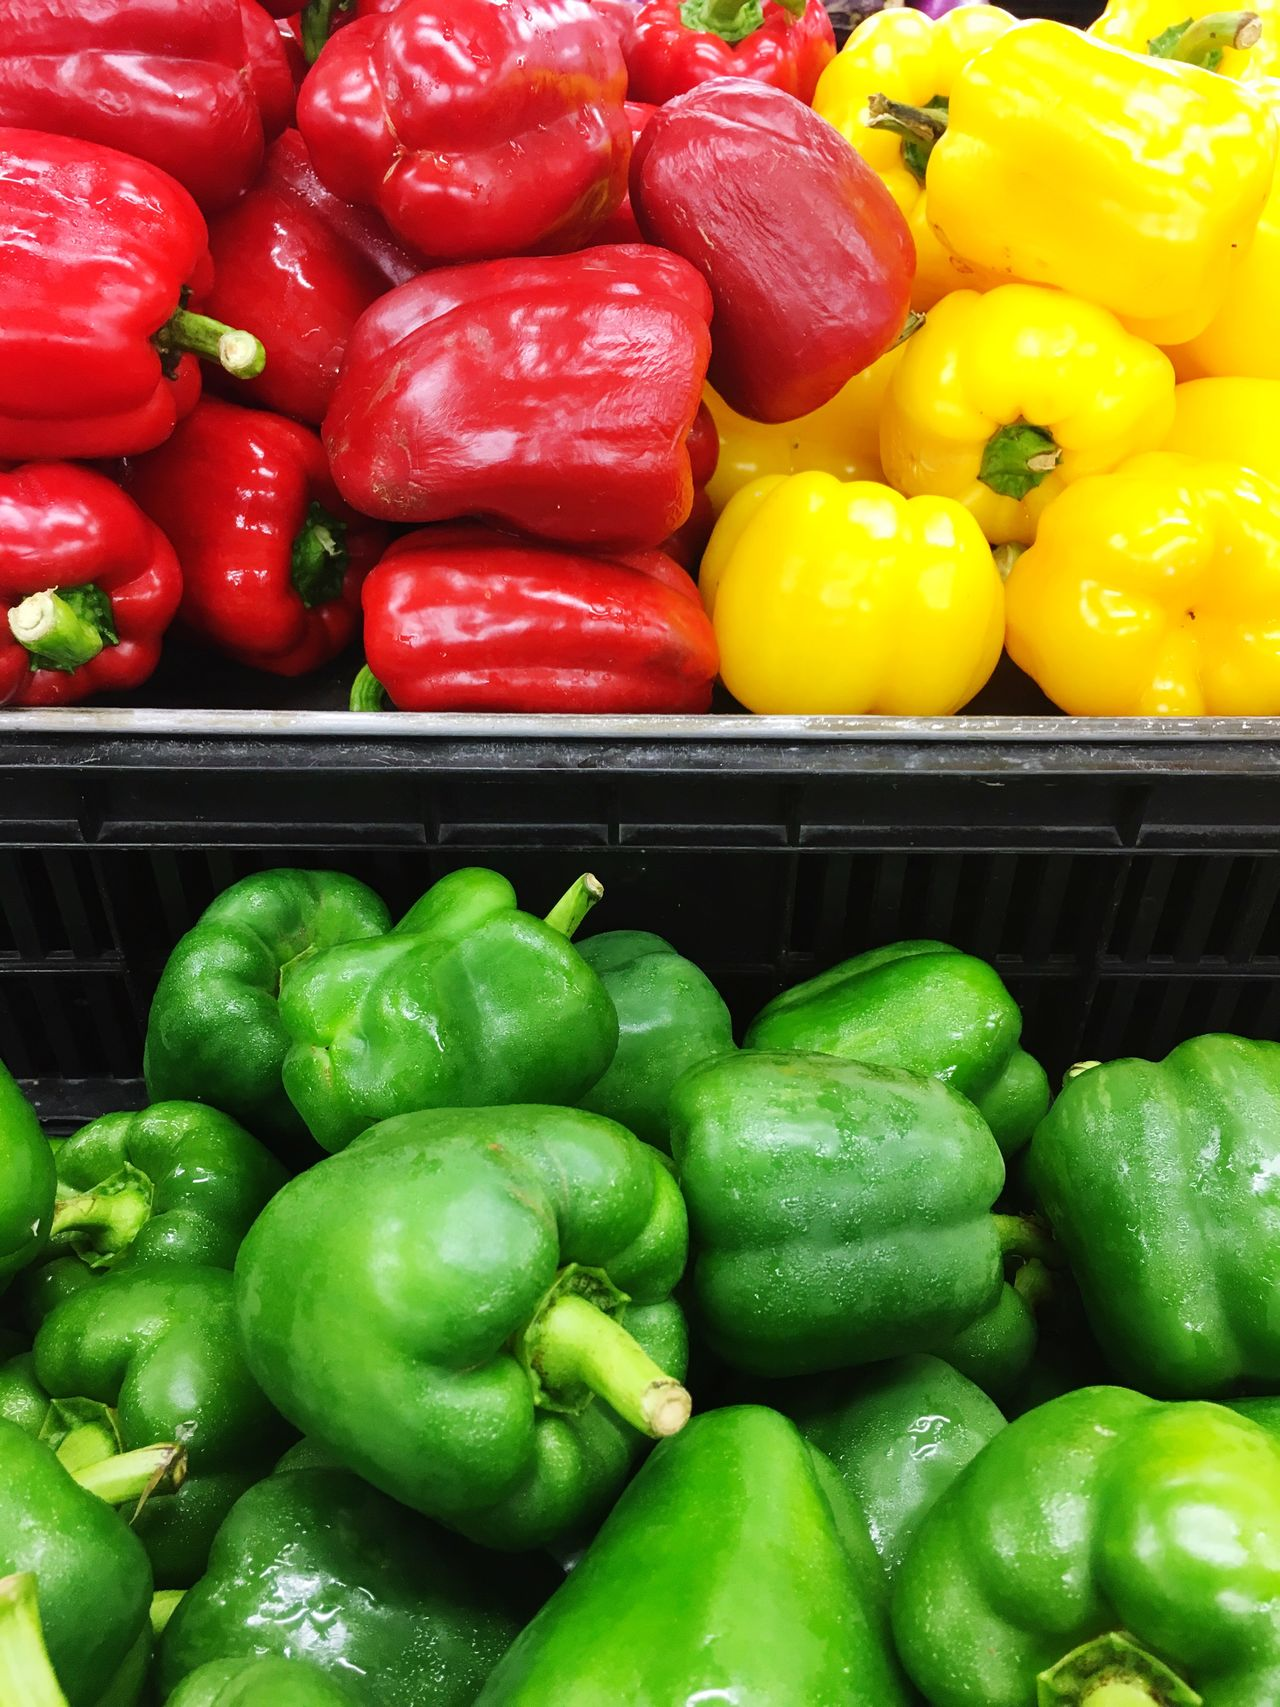 Capsicum Vegetable Freshness Bell Pepper Healthy Eating Red Bell Pepper Food And Drink Food Retail  Green Color Green Bell Pepper Full Frame Large Group Of Objects Backgrounds For Sale No People Market Multi Colored Market Stall Shelf Day Ready-to-eat Health Business Retail  Food And Drink